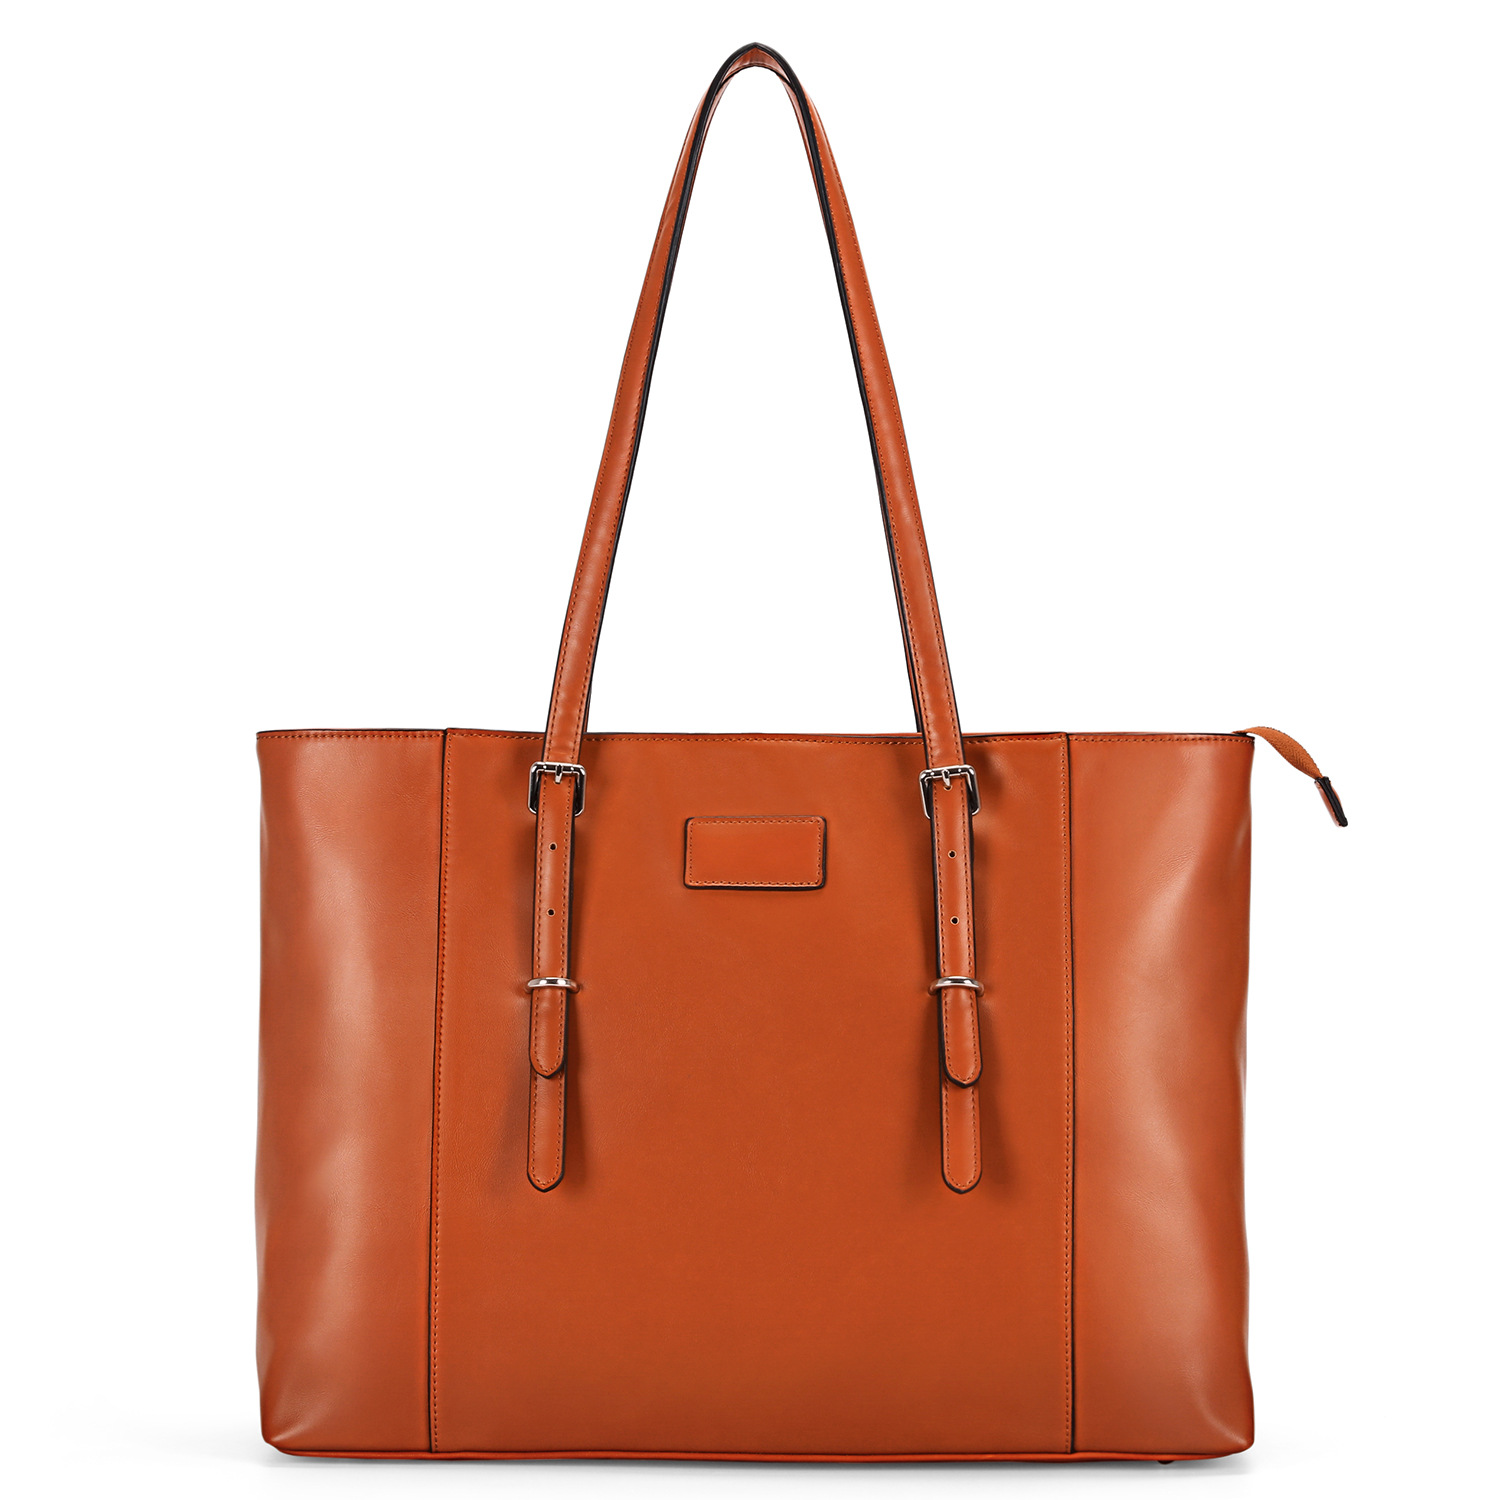 Bags For Women 2019 New Fashion Leather Tote Bag Large Capacity Female Casual Shoulder Bag Black Brown Office Lady Handbag BolsaBags For Women 2019 New Fashion Leather Tote Bag Large Capacity Female Casual Shoulder Bag Black Brown Office Lady Handbag Bolsa